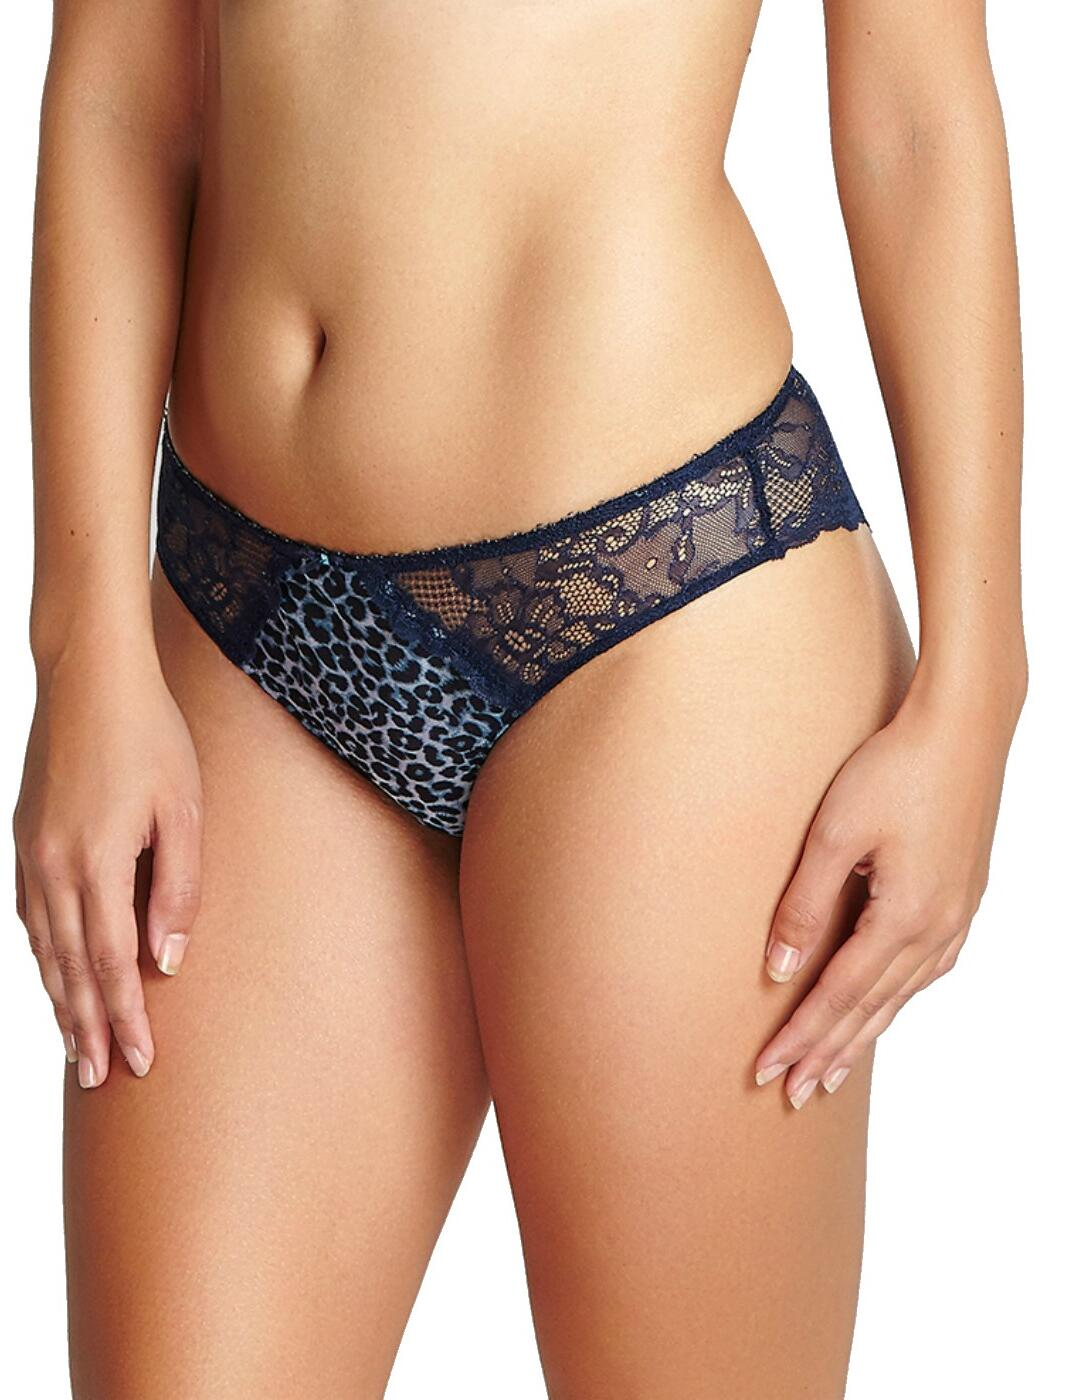 6953 Panache Jasmine Brazilian Brief - 6953 Animal Navy